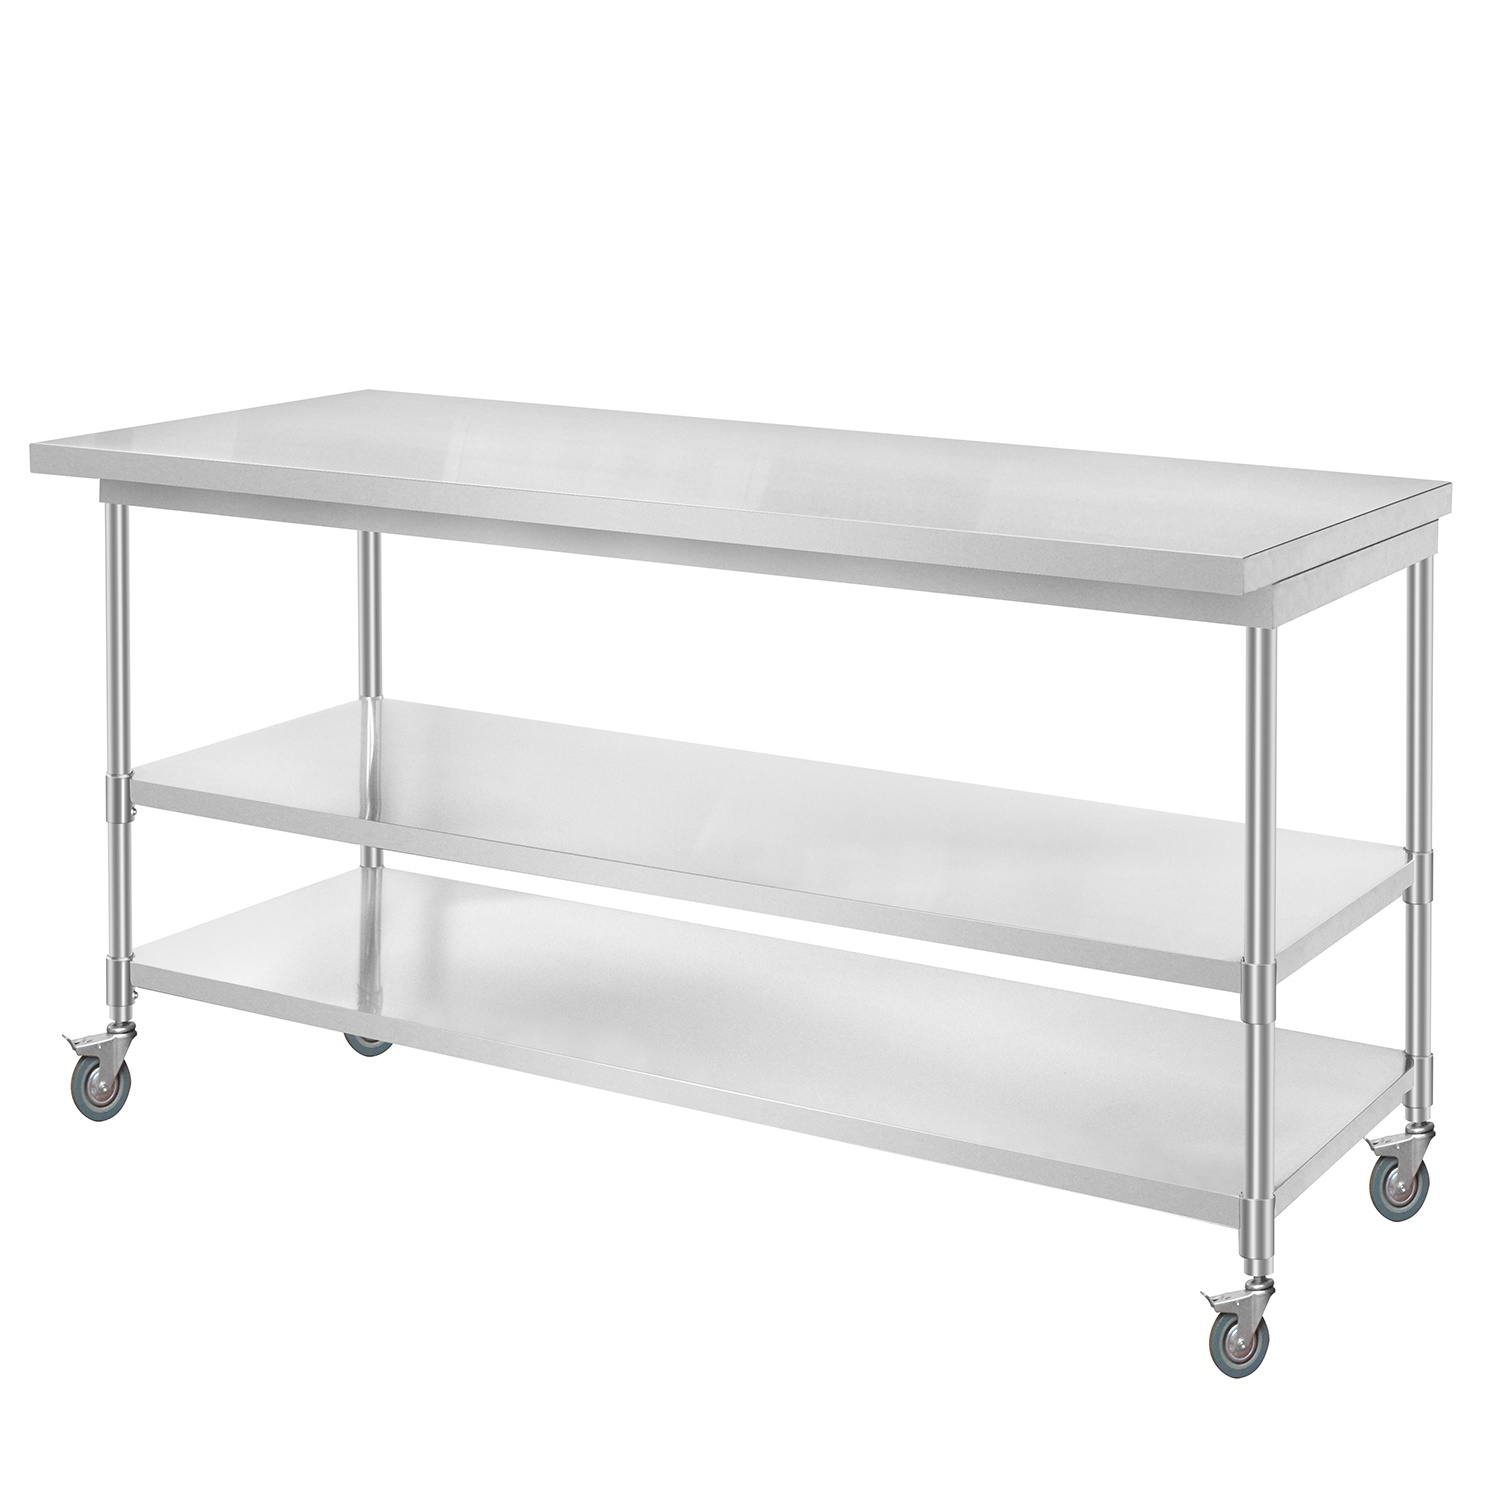 China Commercial Stainless Steel Kitchen Prep Work Table With 4 Casters China Work Table 2 Tier Kitchen Trolley